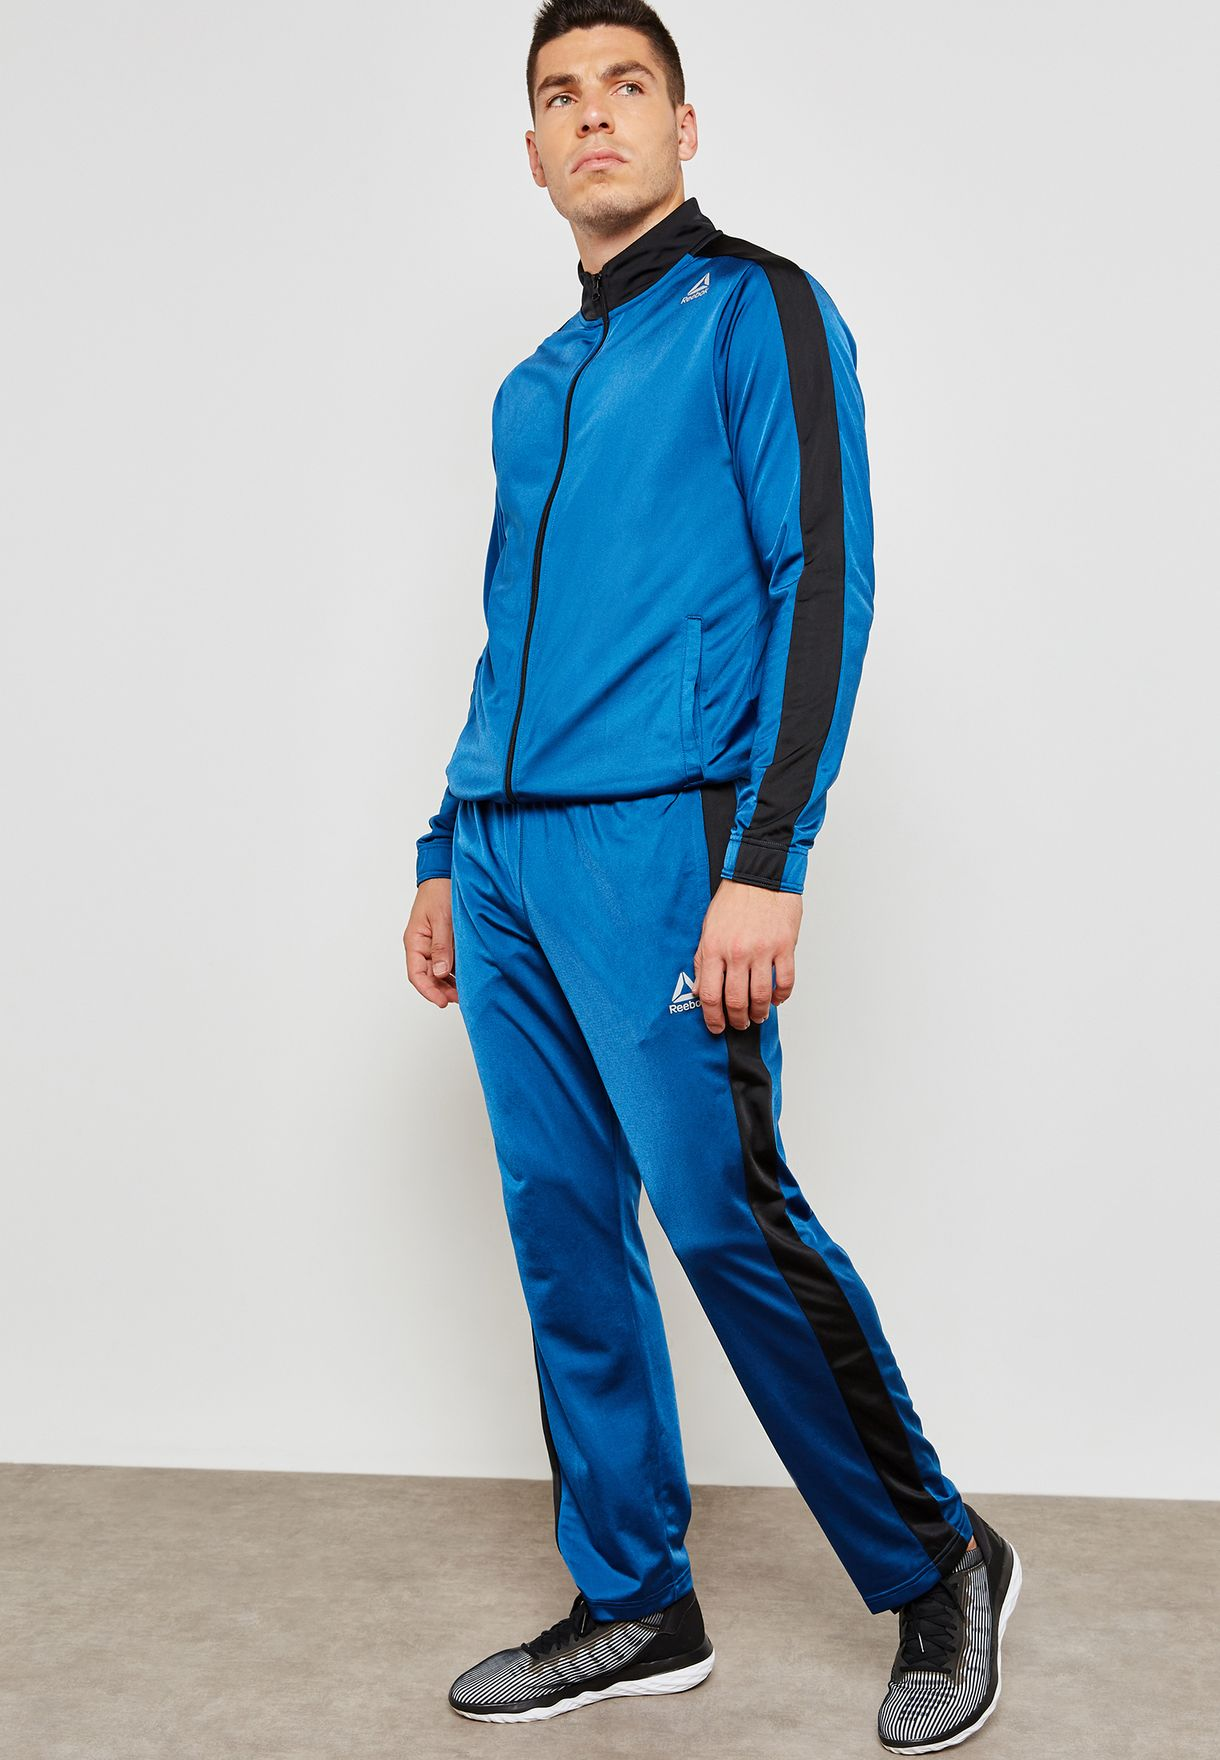 963cd9f7852 Shop Reebok blue Tricot Tracksuit CY4864 for Men in UAE - RE019AT25YOO